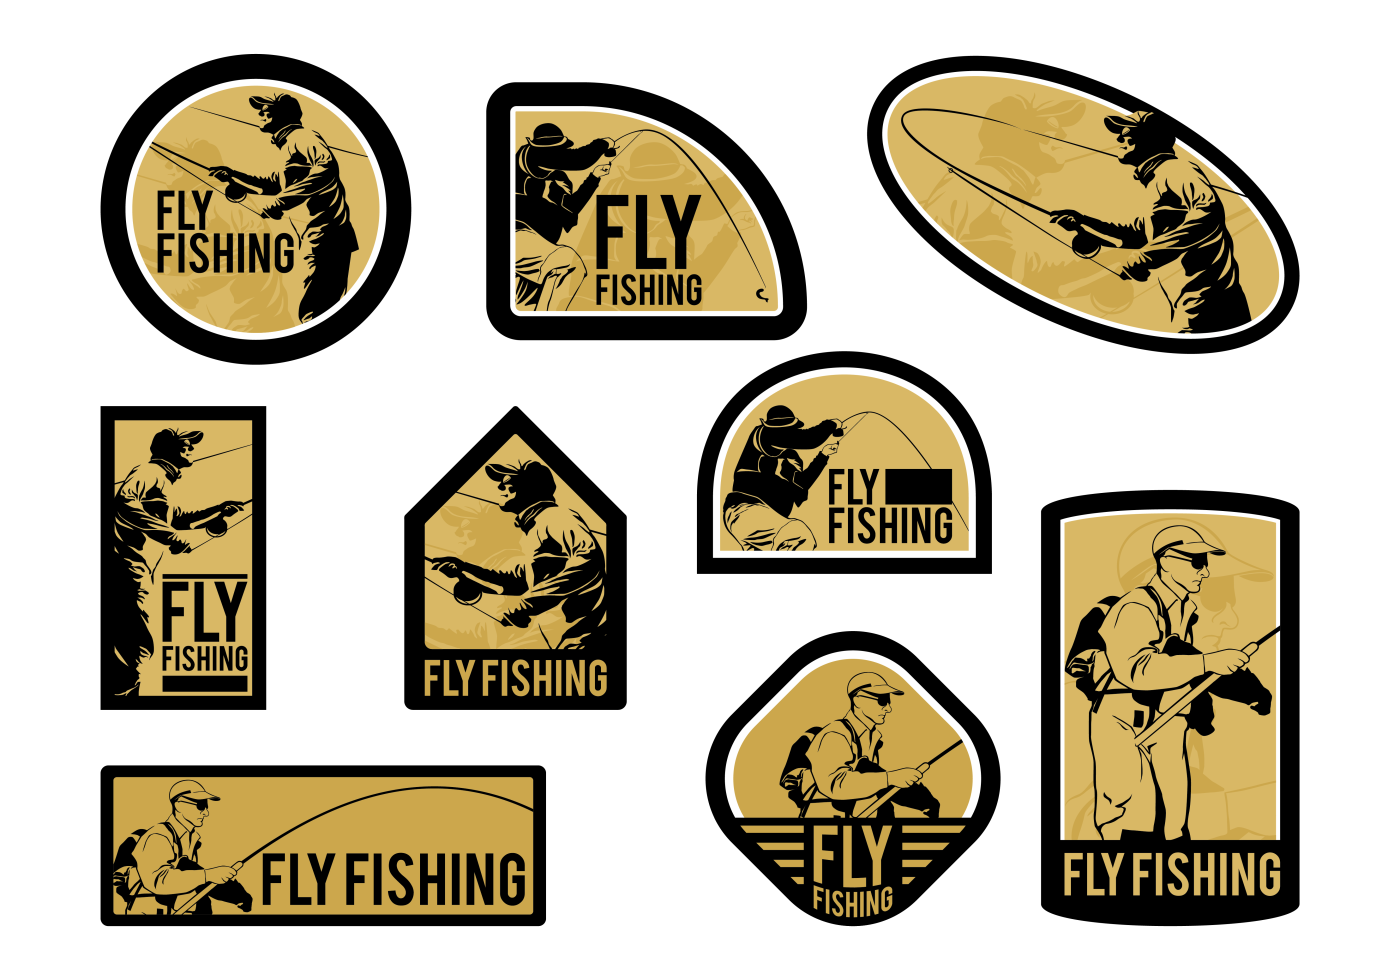 Fly Fishing Free Vector Art - (3176 Free Downloads)